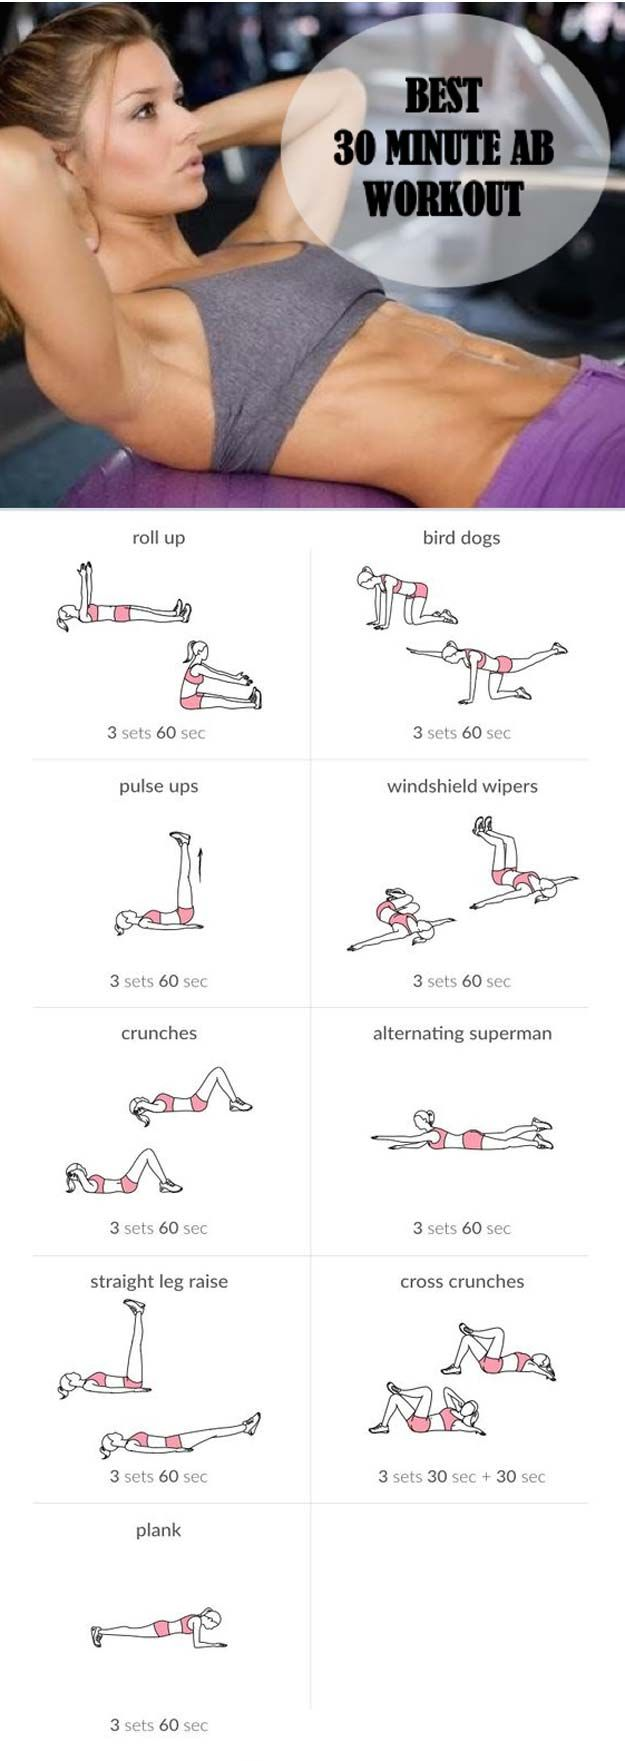 Best Exercises for Abs - Ab Workout - Best Ab Exercises And Ab Workouts For A Flat Stomach, Increased Health Fitness, And Weightless. Ab Exercises For Women, For Men, And For Kids. Great With A Diet T